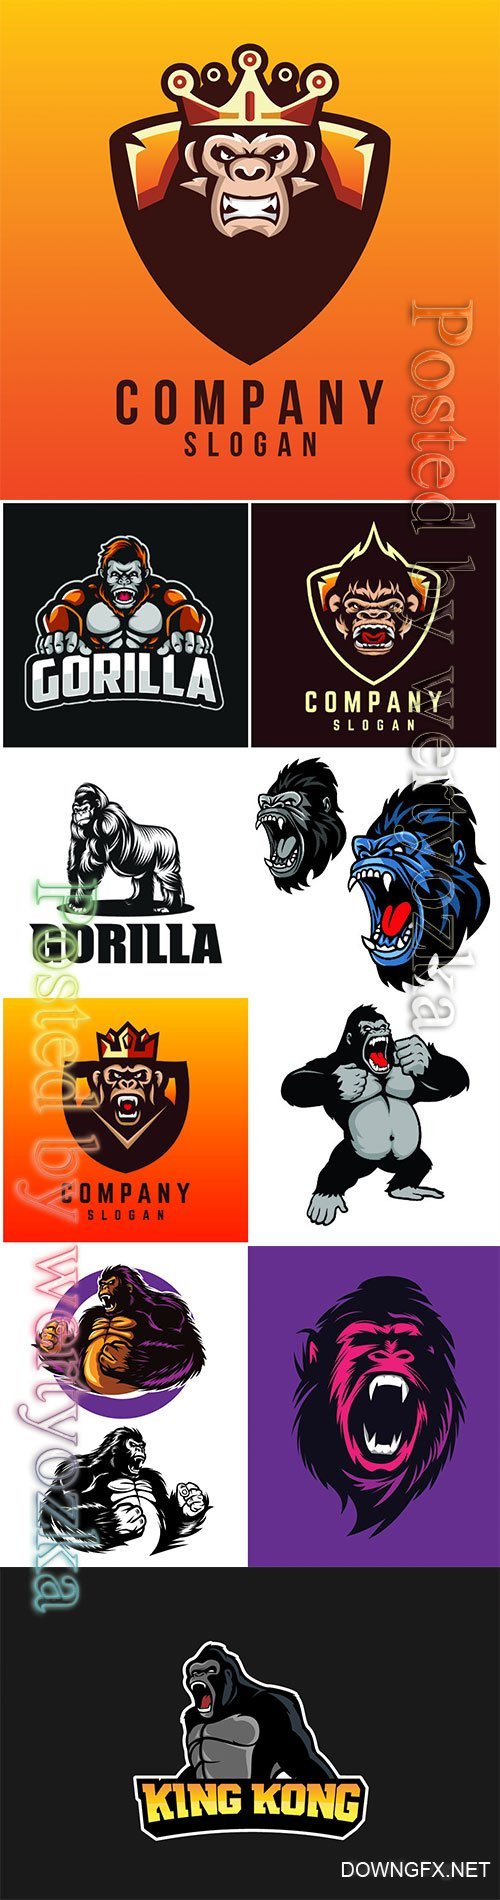 Monkey logos vector illustration